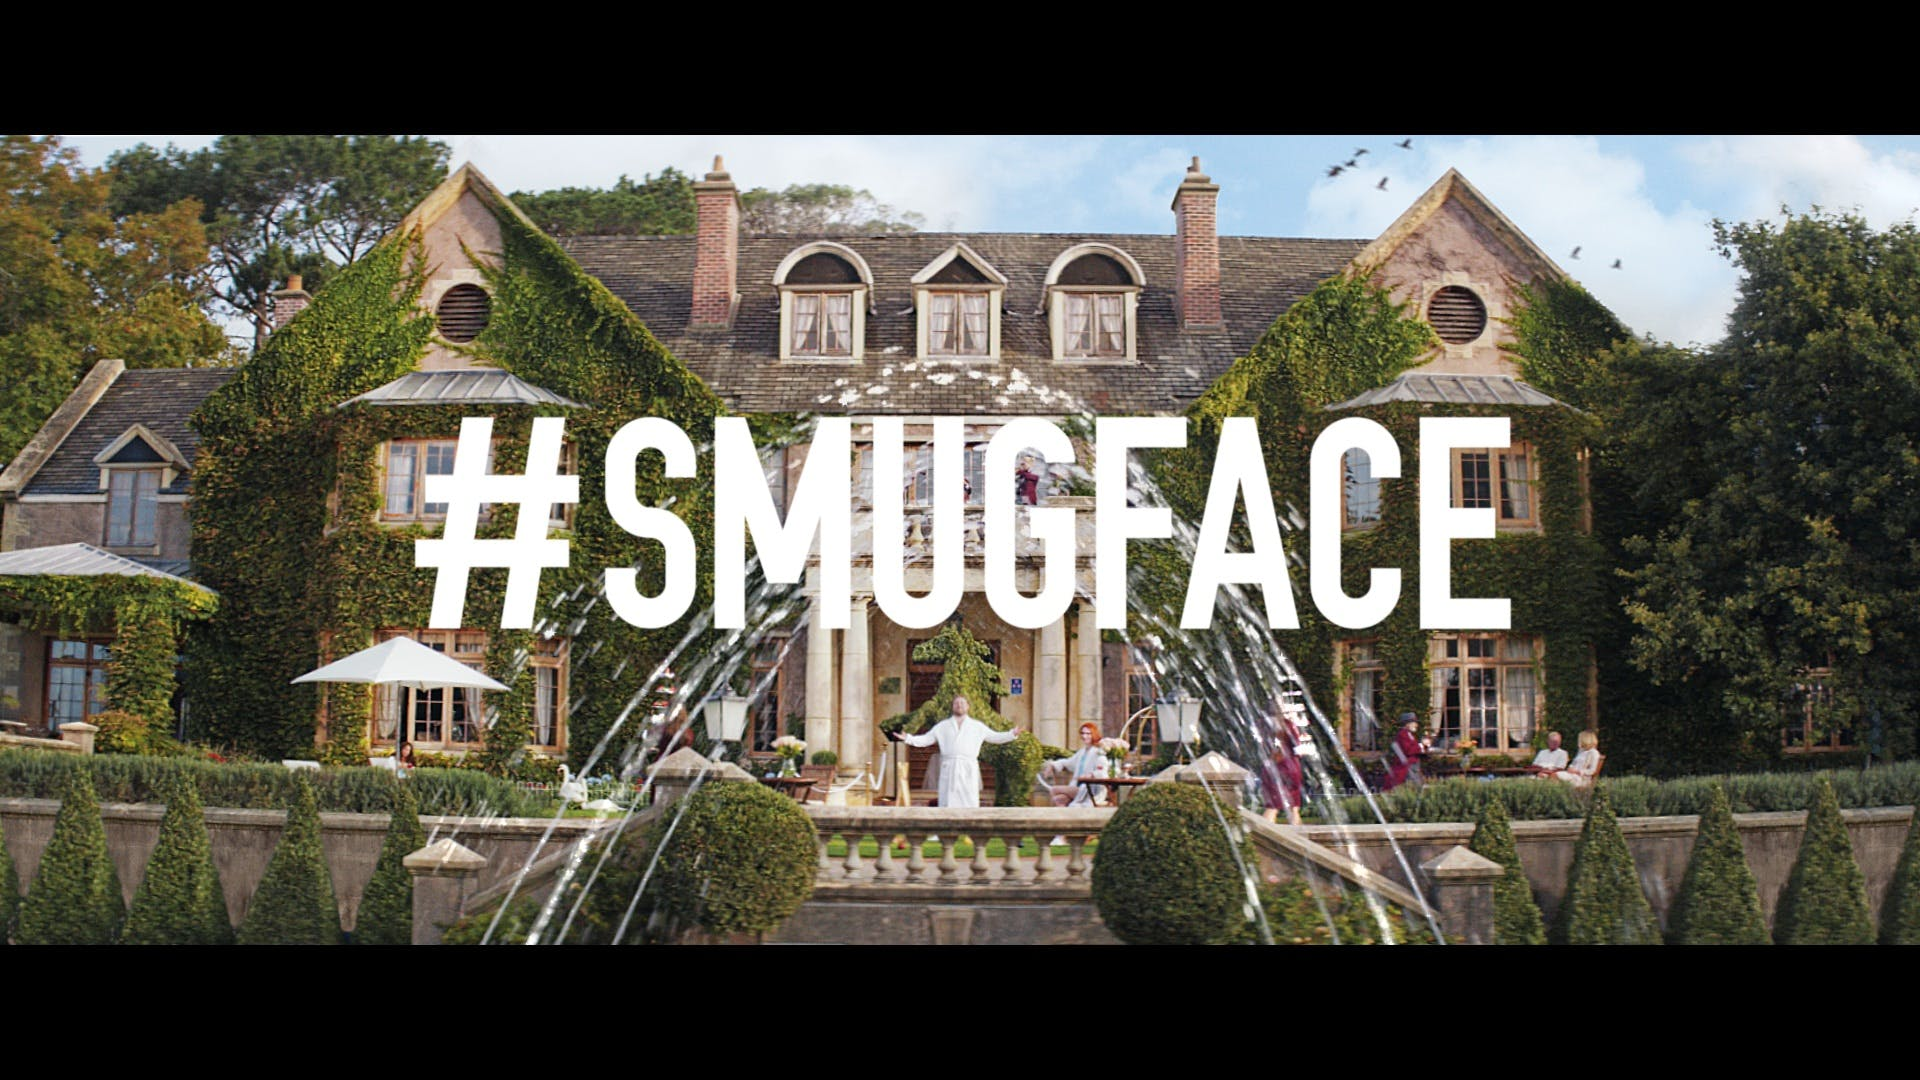 Secret Escapes #Smugface campaign for the UK market represents the second stage of driving awareness.